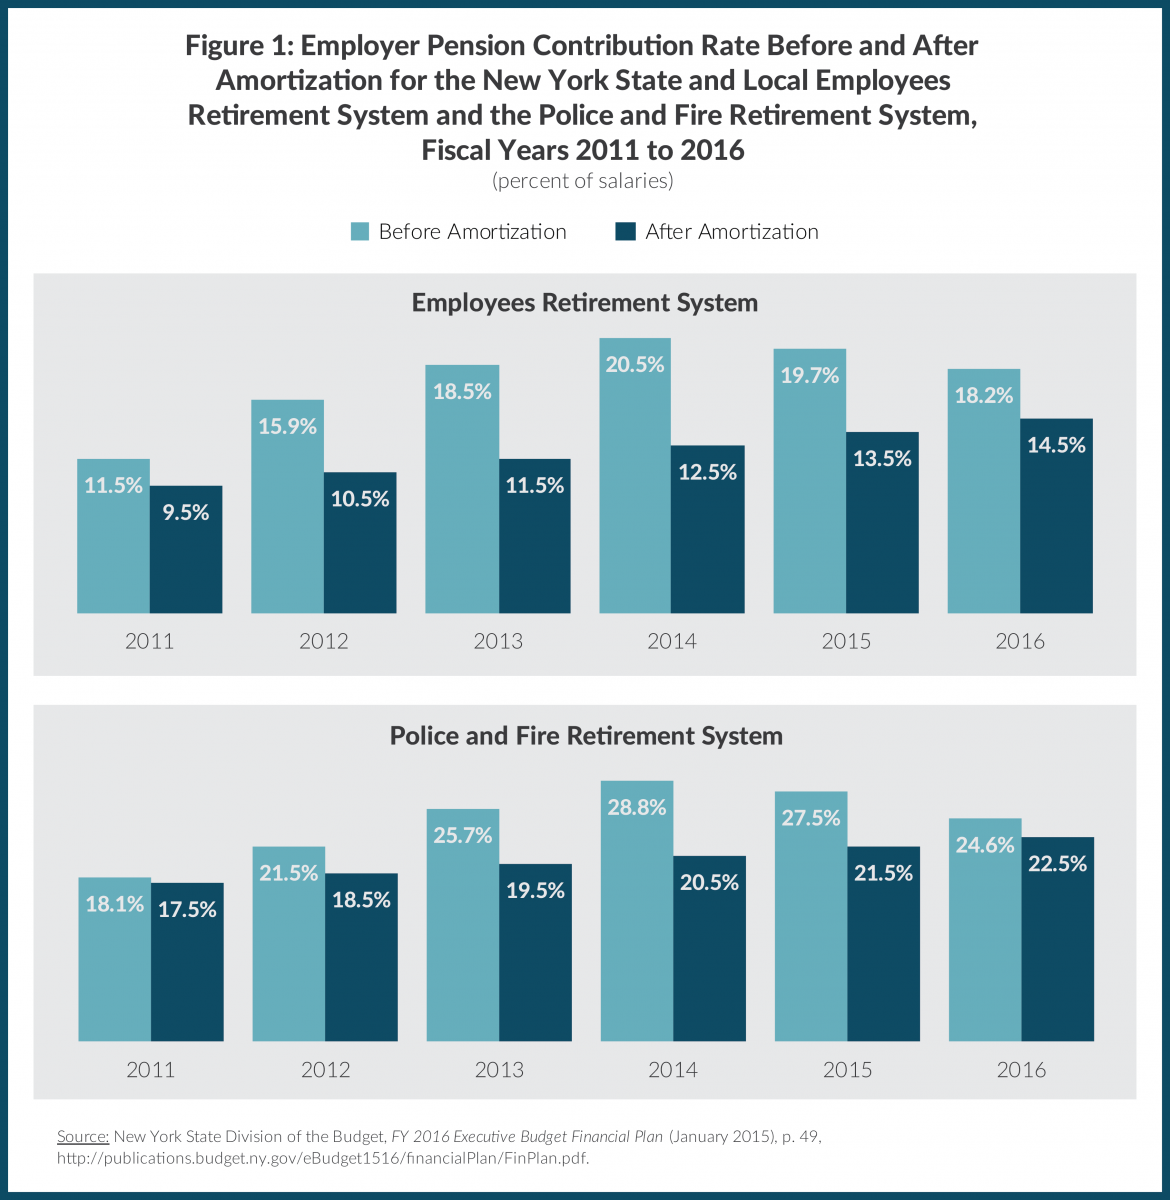 Figure 1: Employer Pension Contribution Rate Before and After Amortization for the New York State and Local Employees Retirement System and the Police and Fire Retirement System, Fiscal Years 2011 to 2016